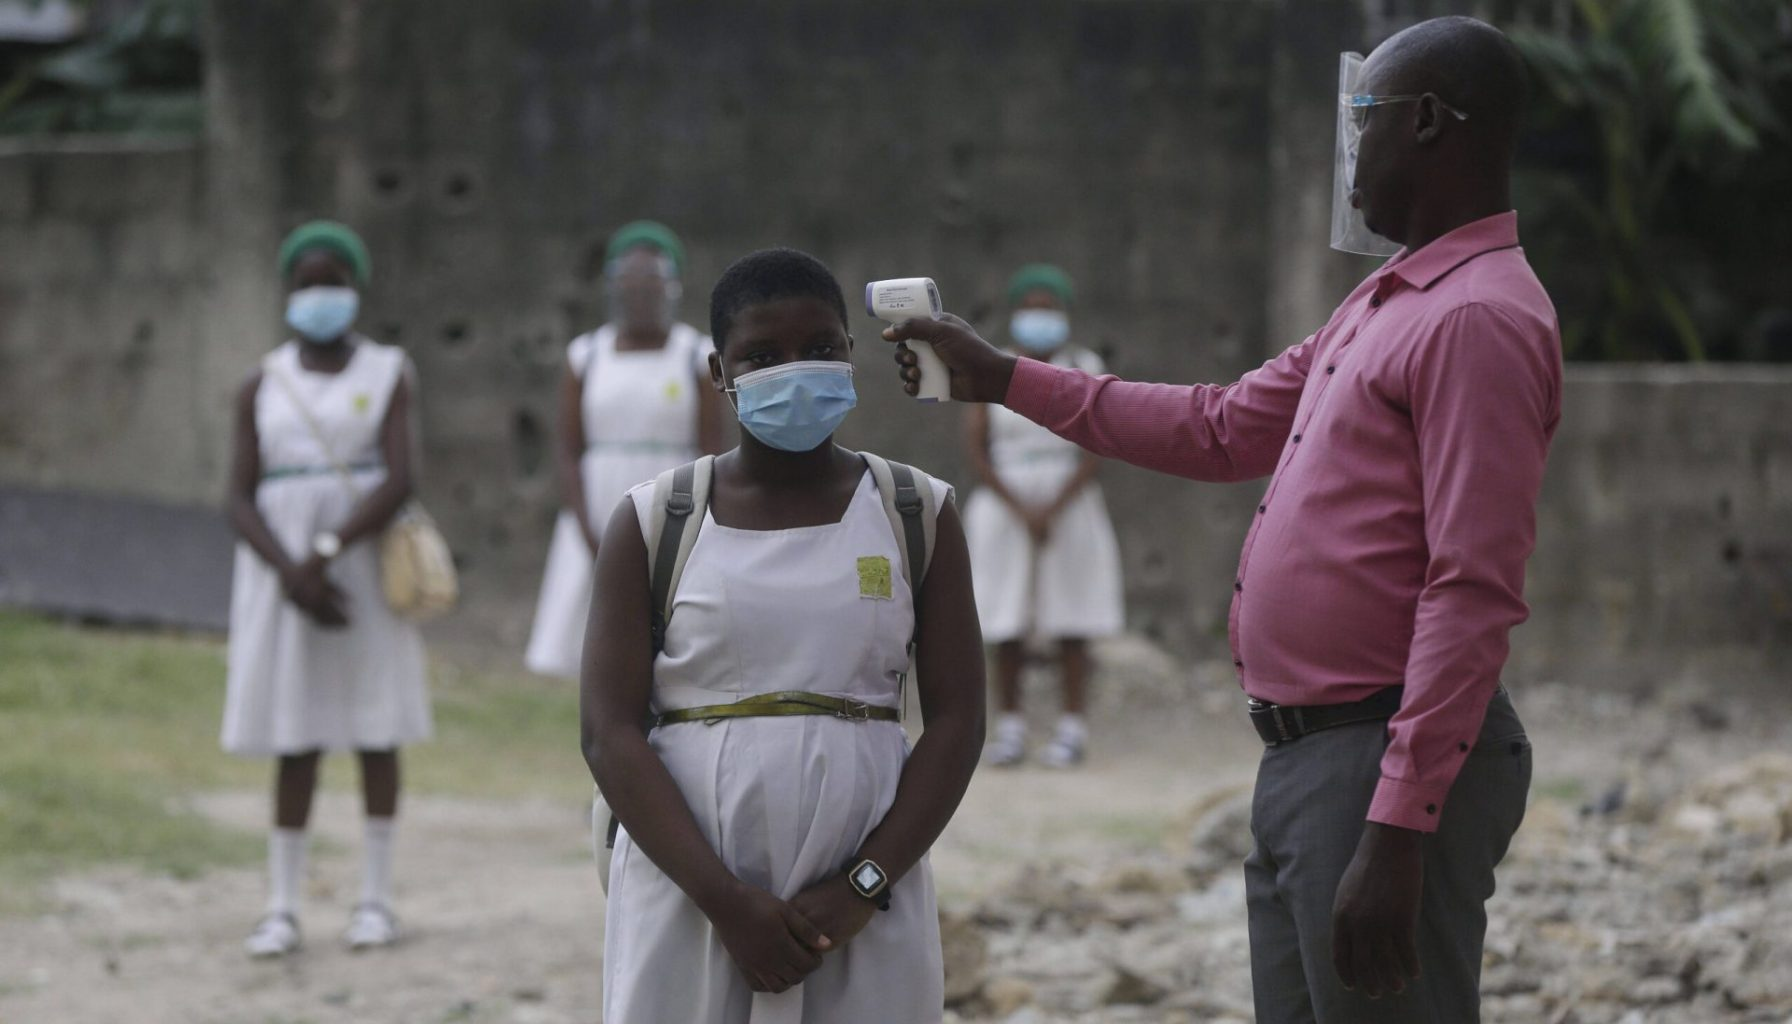 Fears As Schools Reopen In Some Part Of Nigeria Amid COVID-19 Second Wave